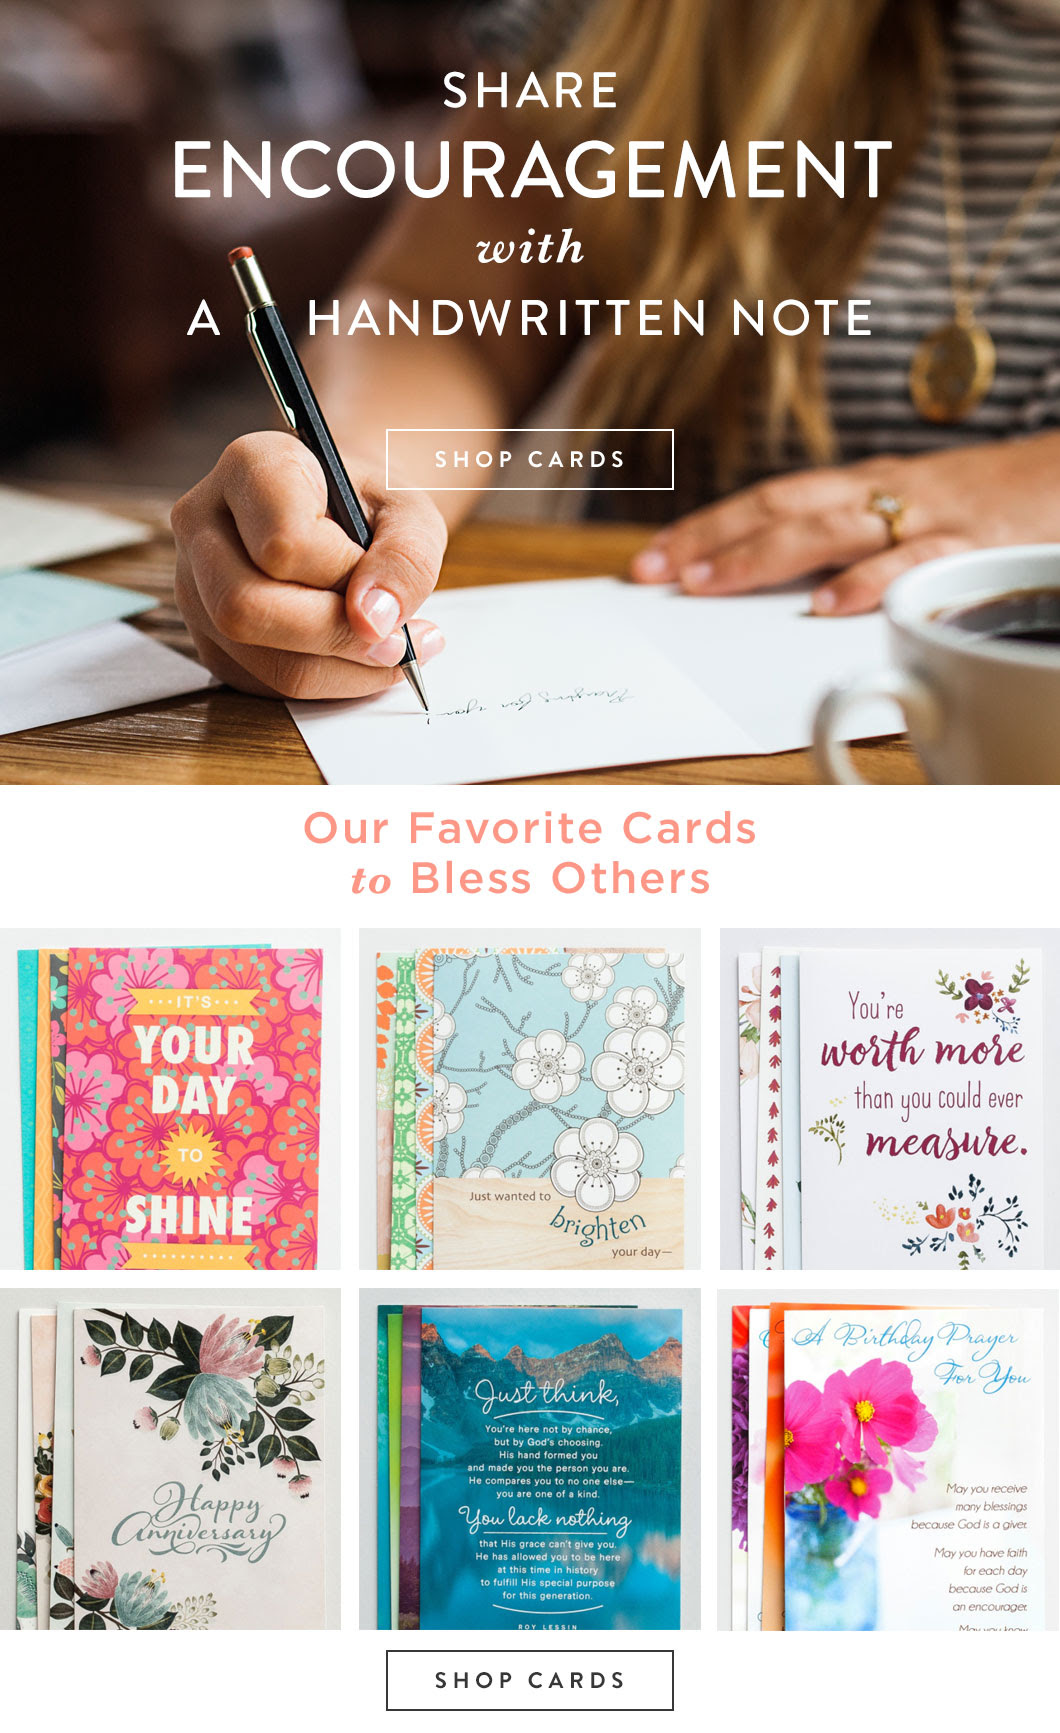 Share Encouragement with a Handwritten Note